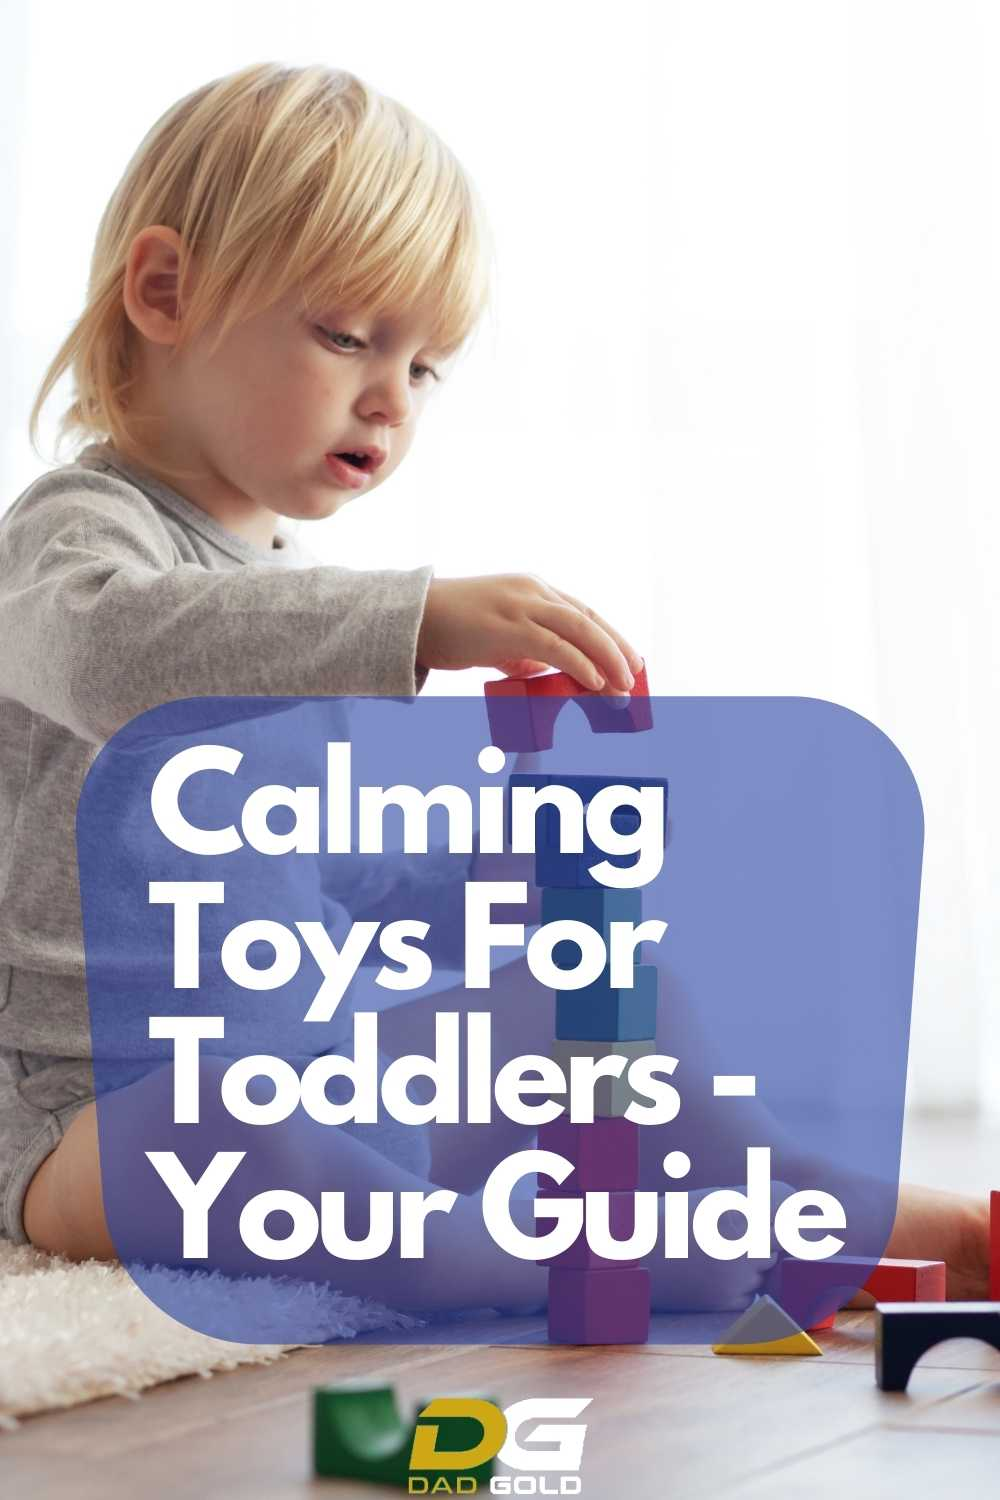 Calming Toys For Toddlers - Your Guide